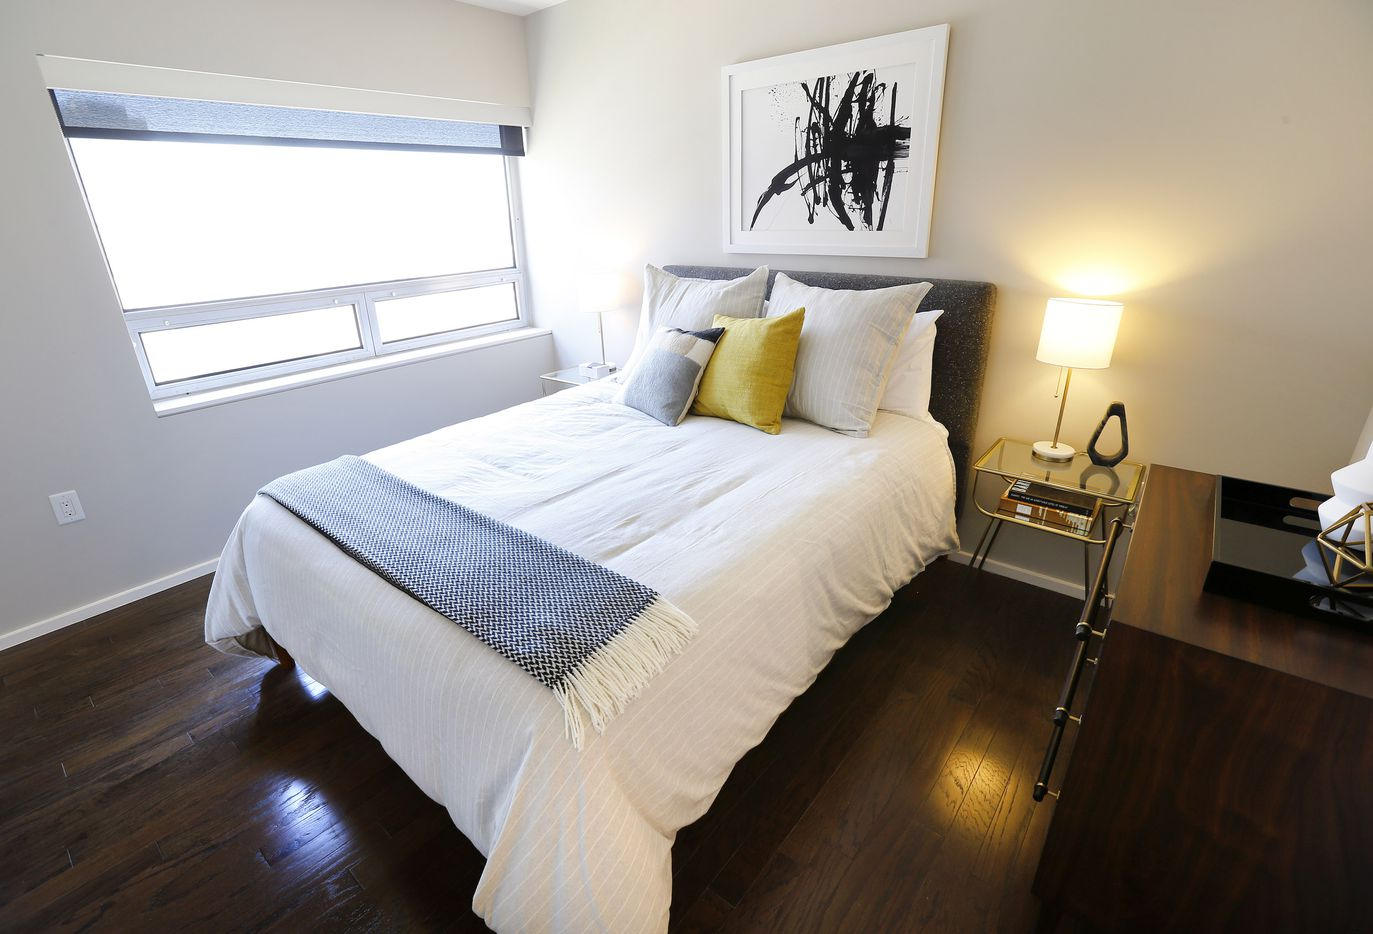 The bedroom of one-bedroom residence at the Statler Residences in downtown Dallas.